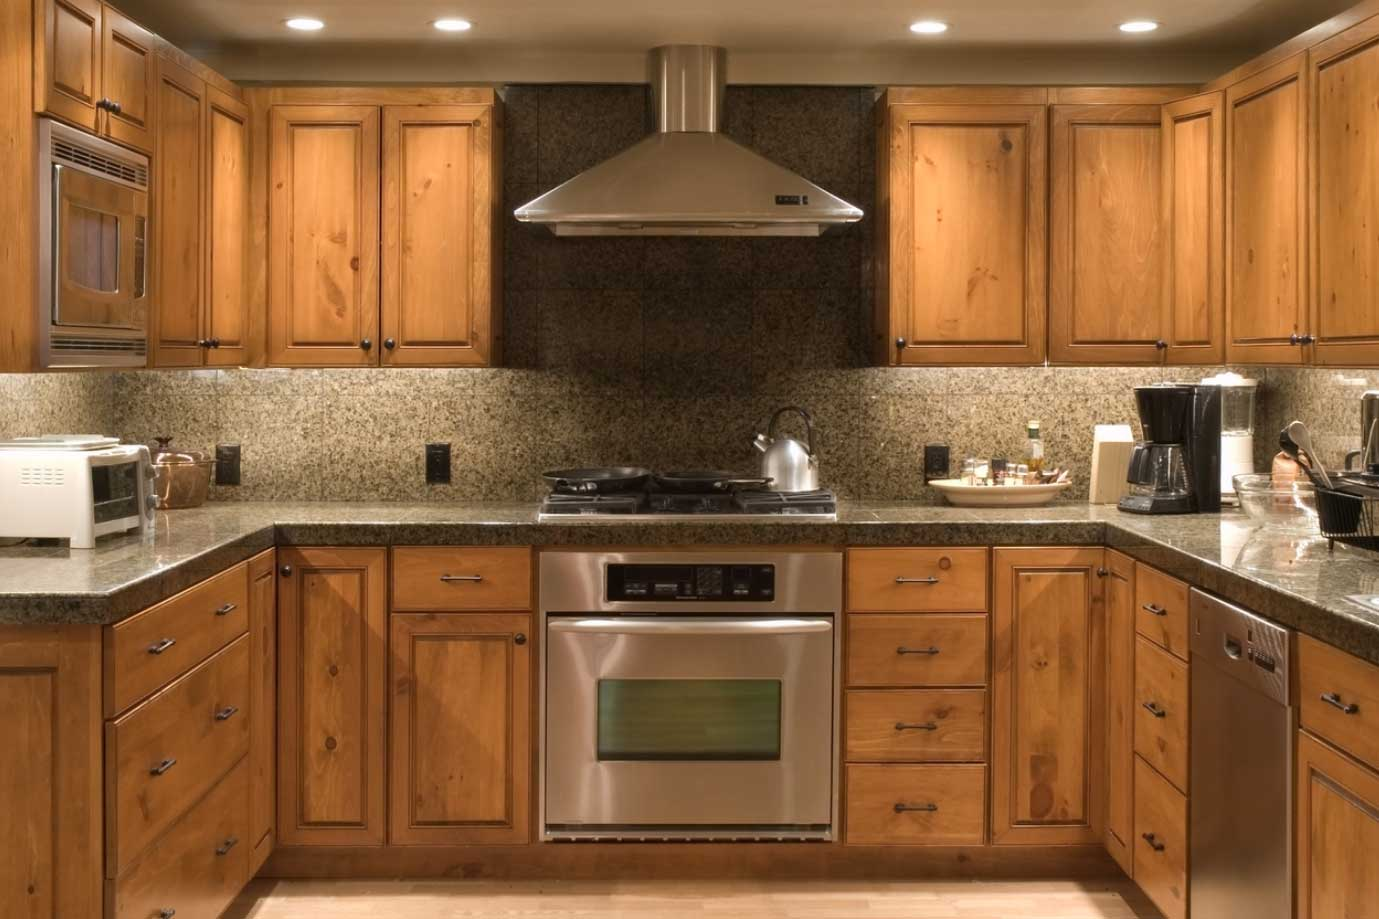 Are Solid Wood Cabinets Worth the Money?